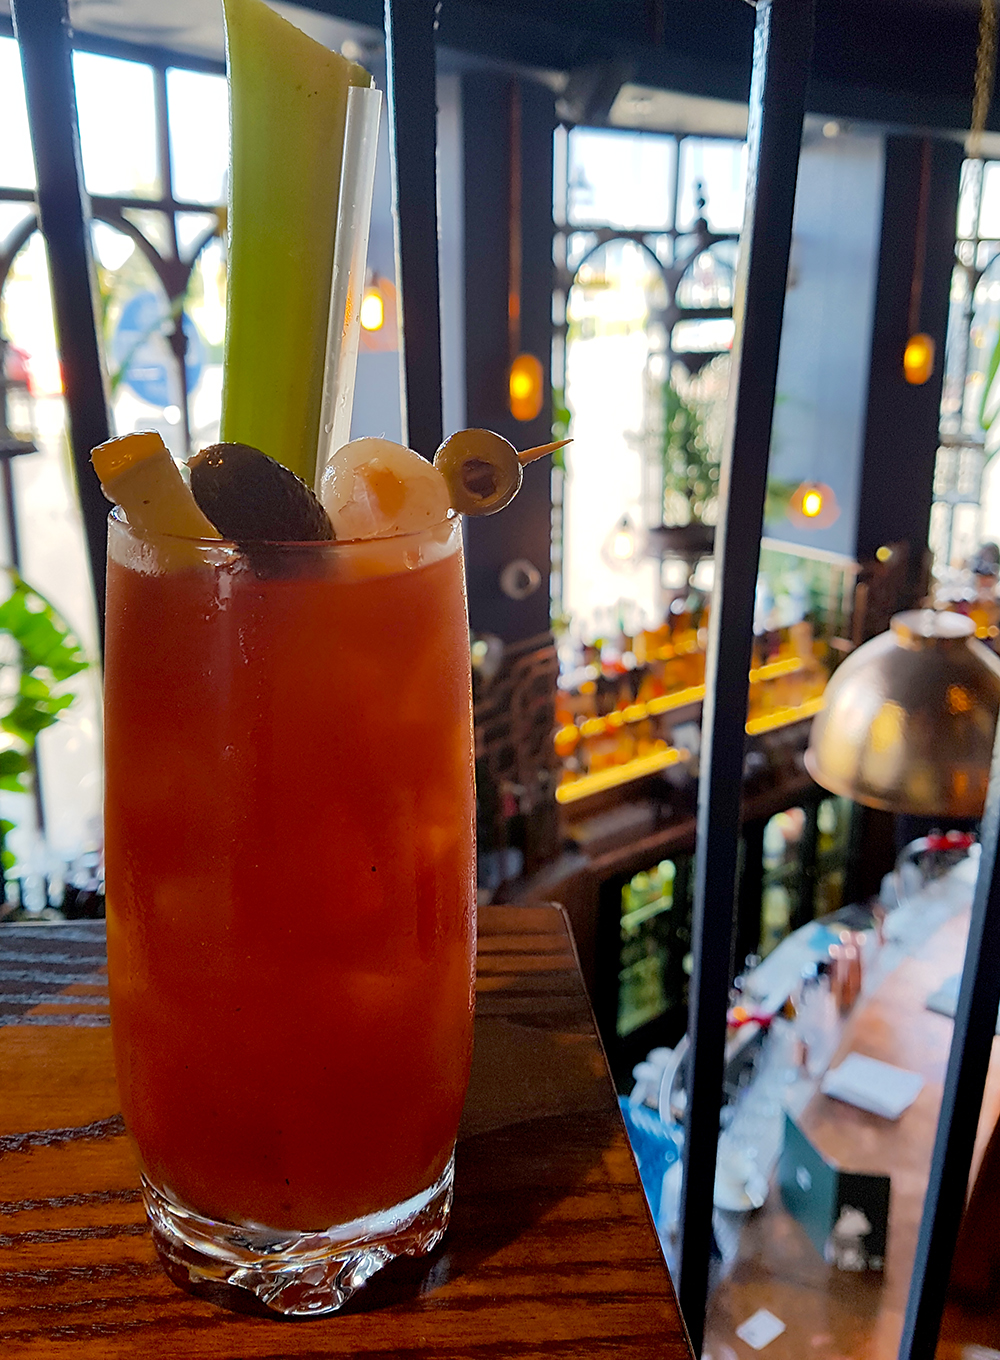 A Bloody Mary goes great with brunch at Bird and Bear Dundee